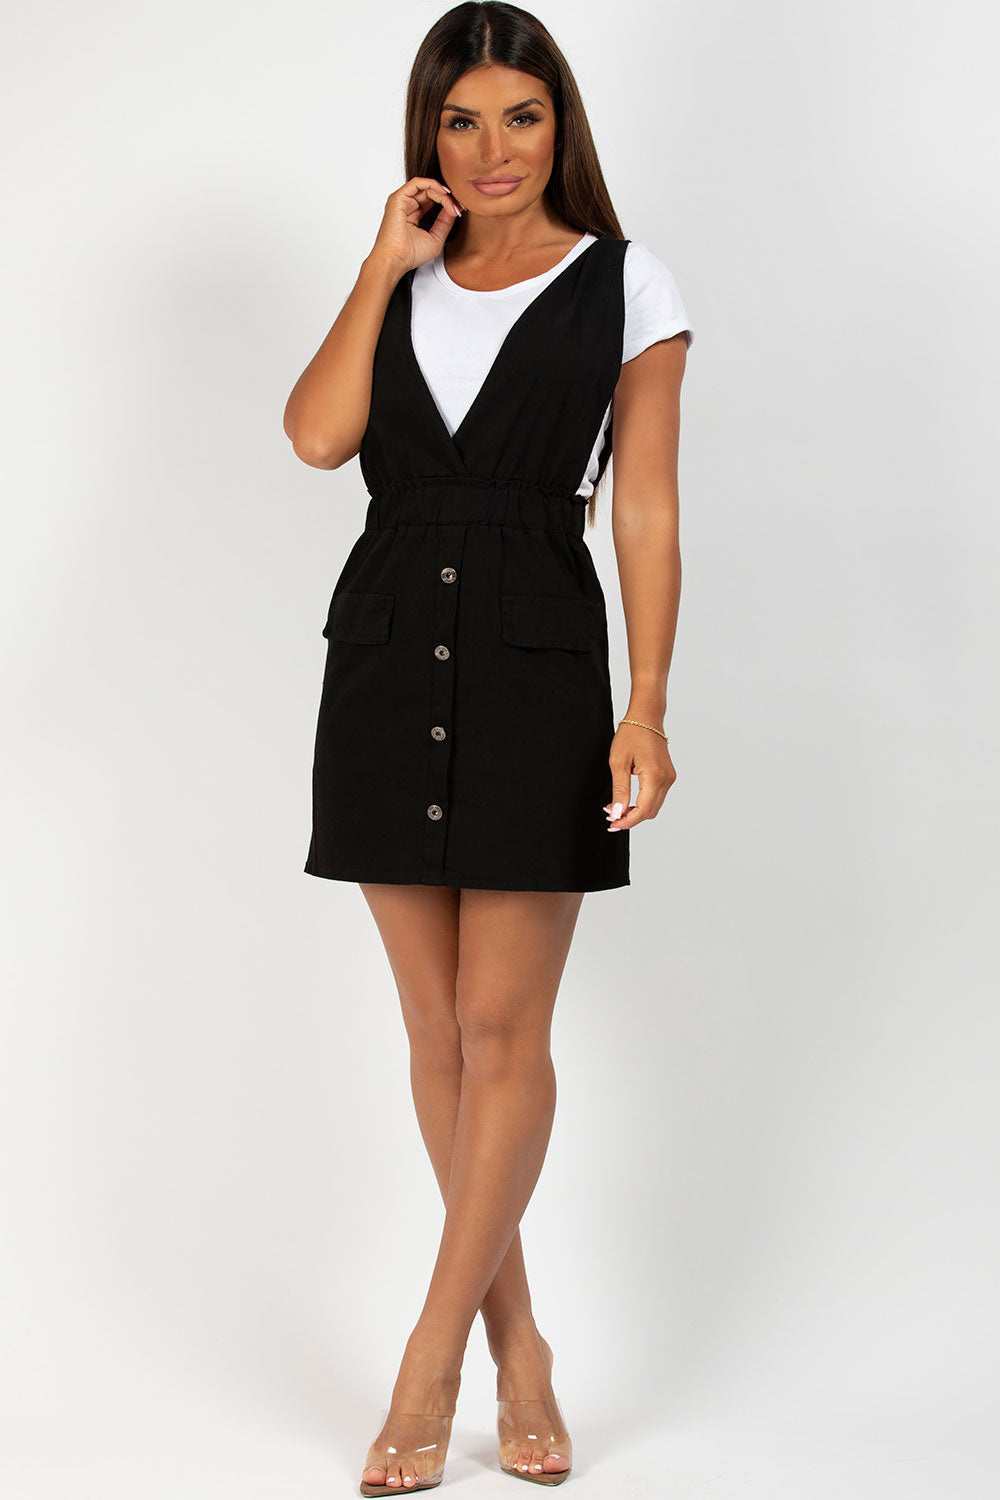 black and white pinafore dress